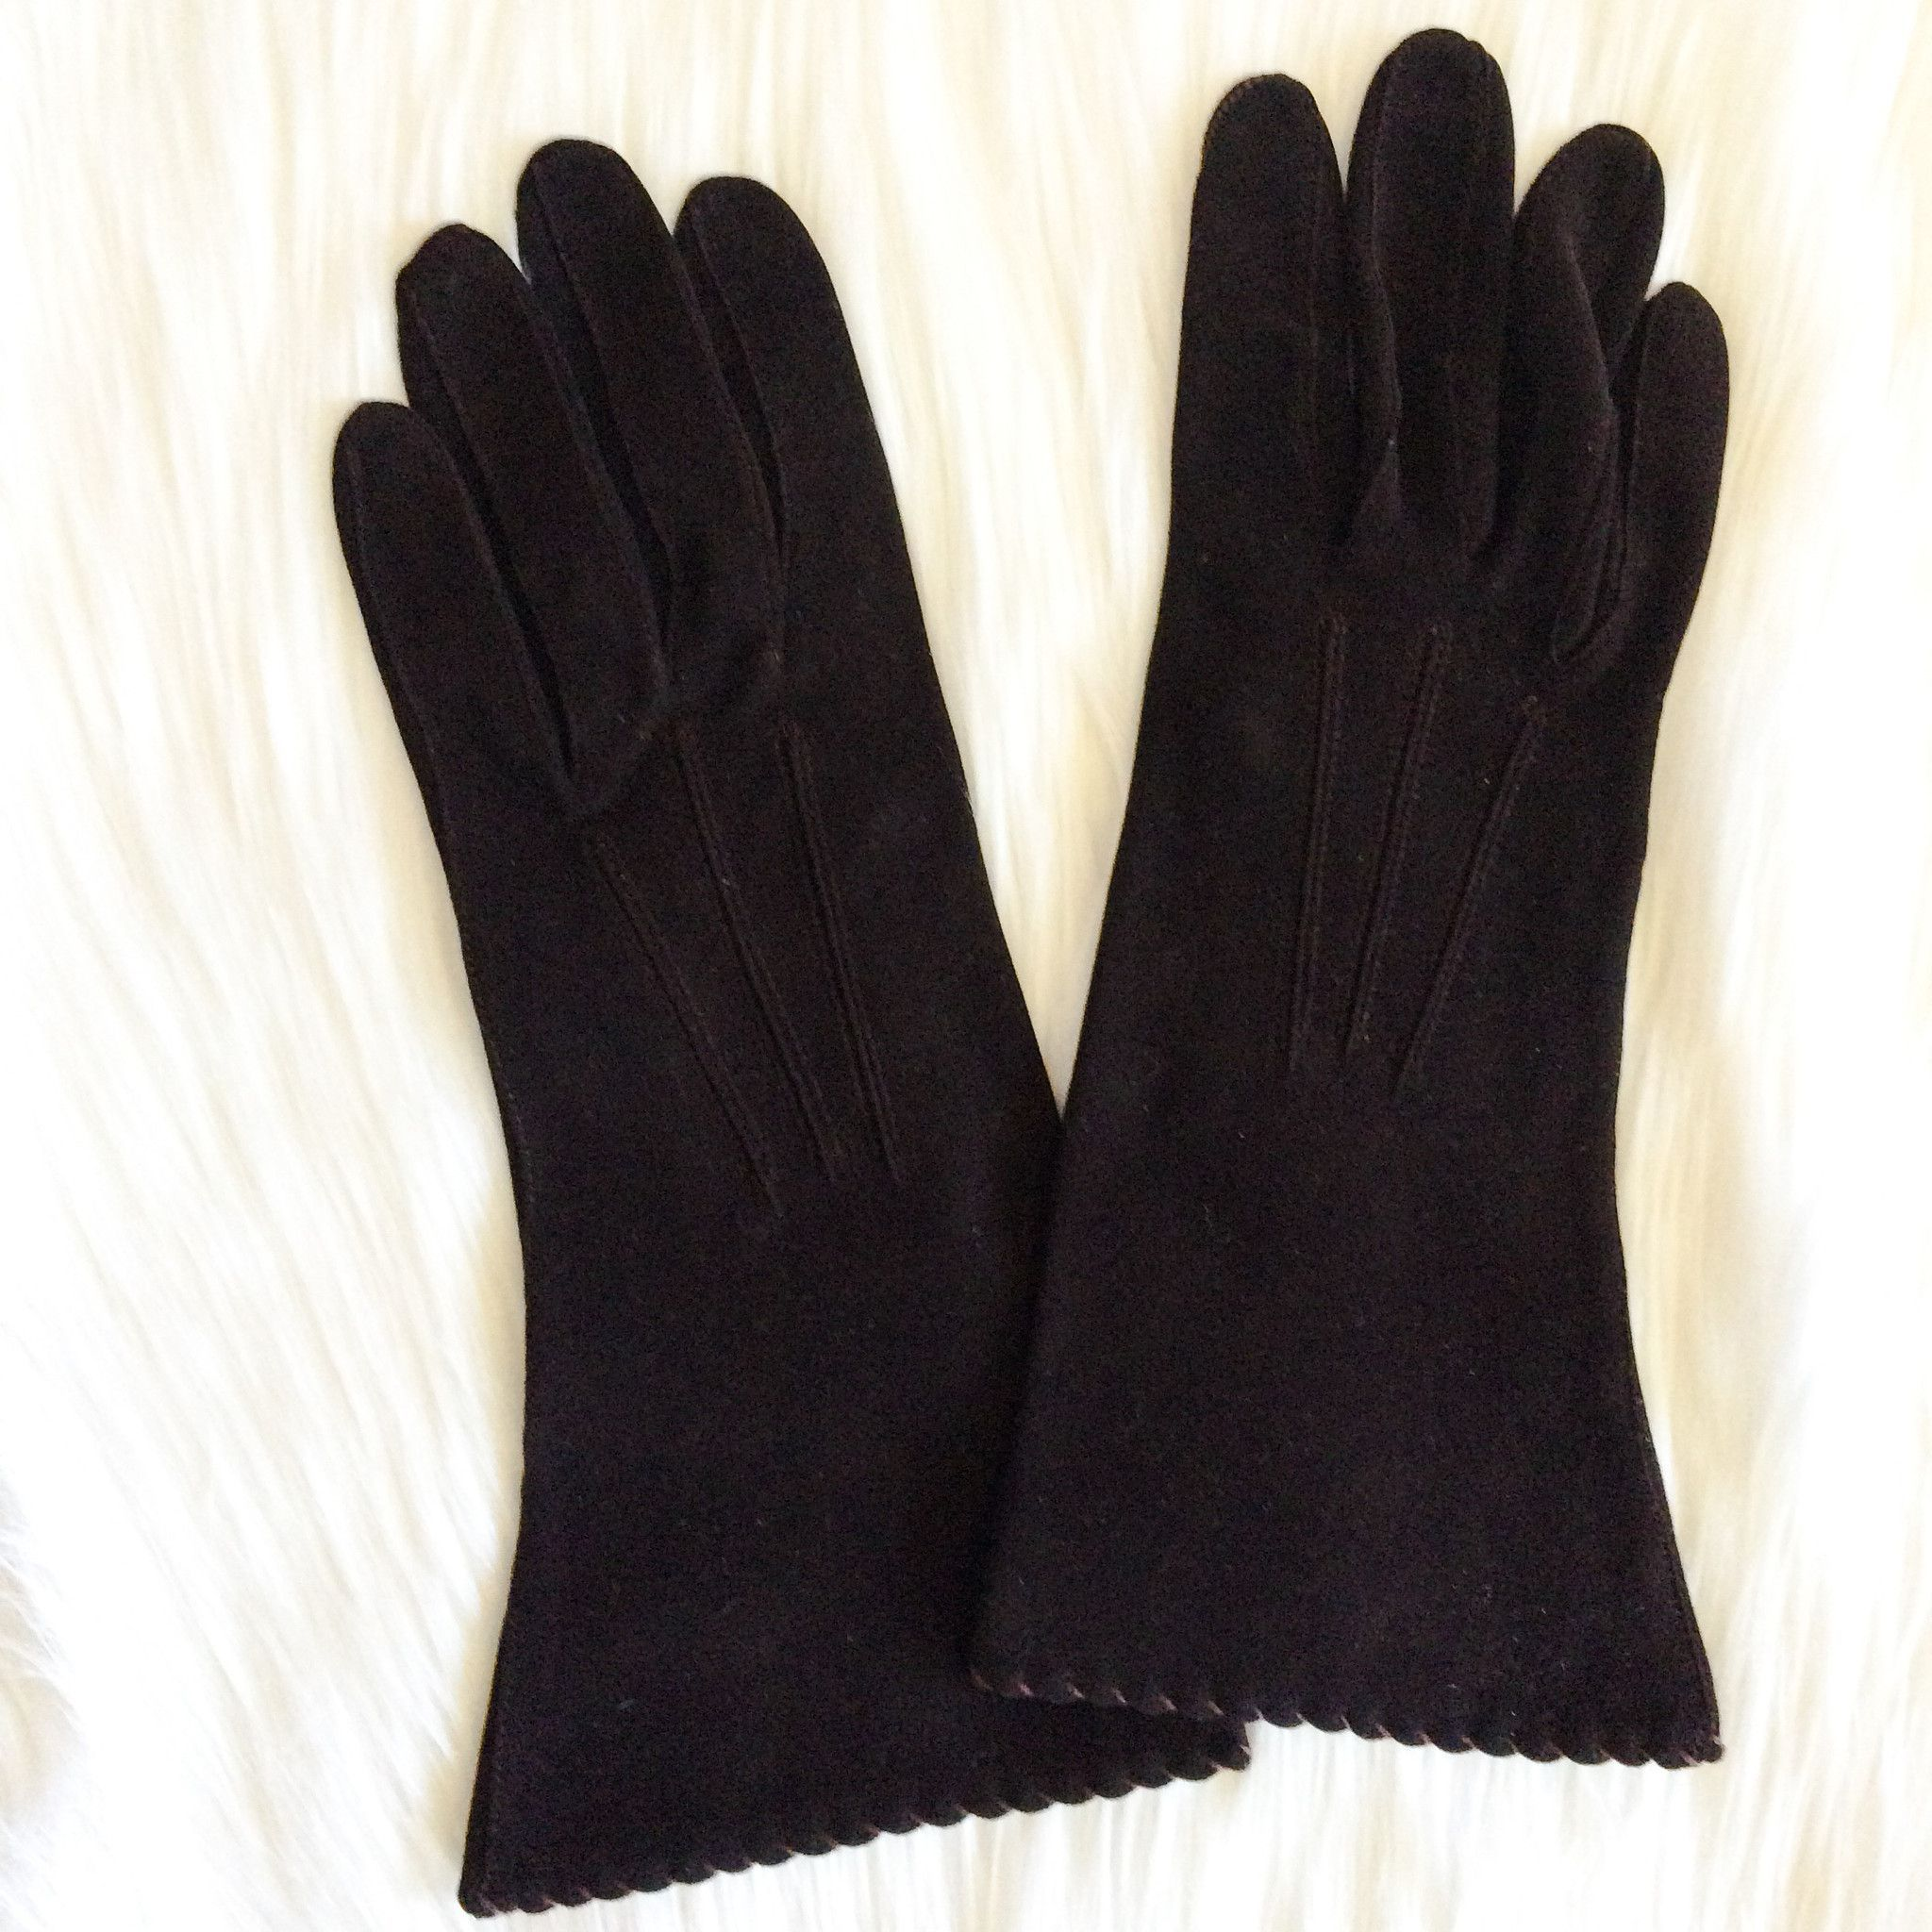 Vintage Pair of Gloves